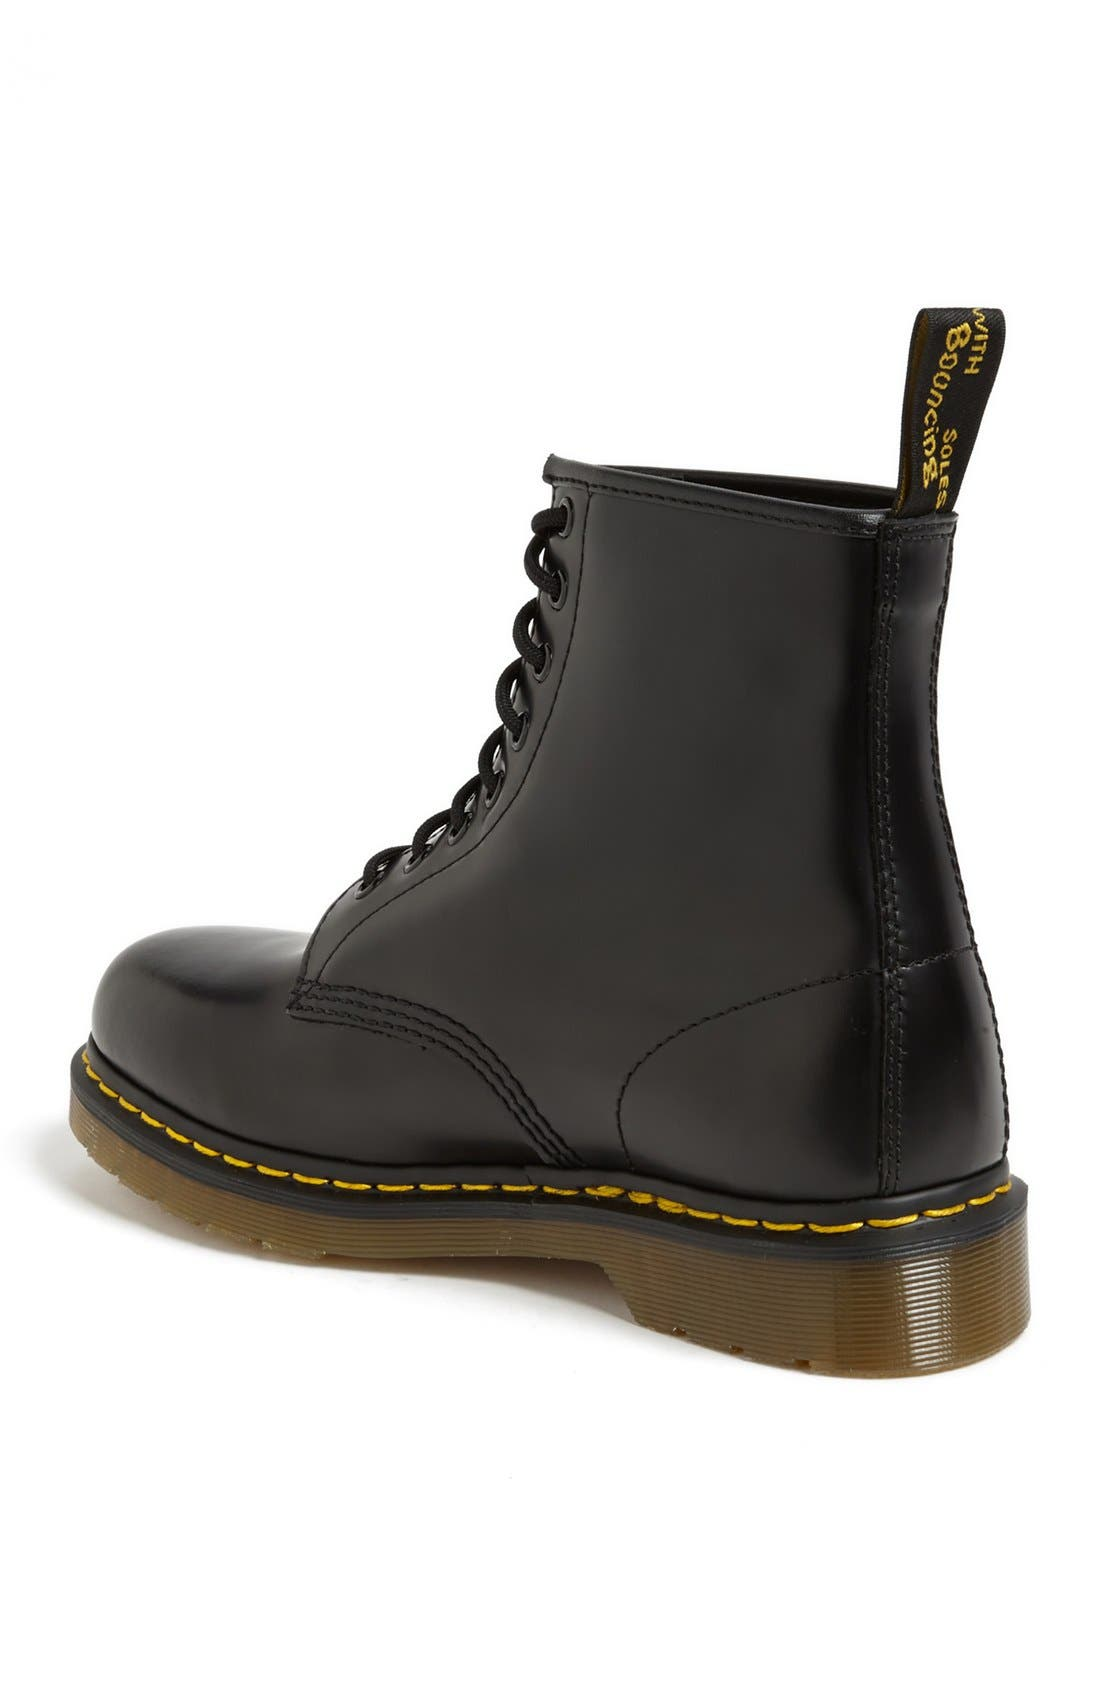 '1460' Boot,                             Alternate thumbnail 3, color,                             BLACK SMOOTH